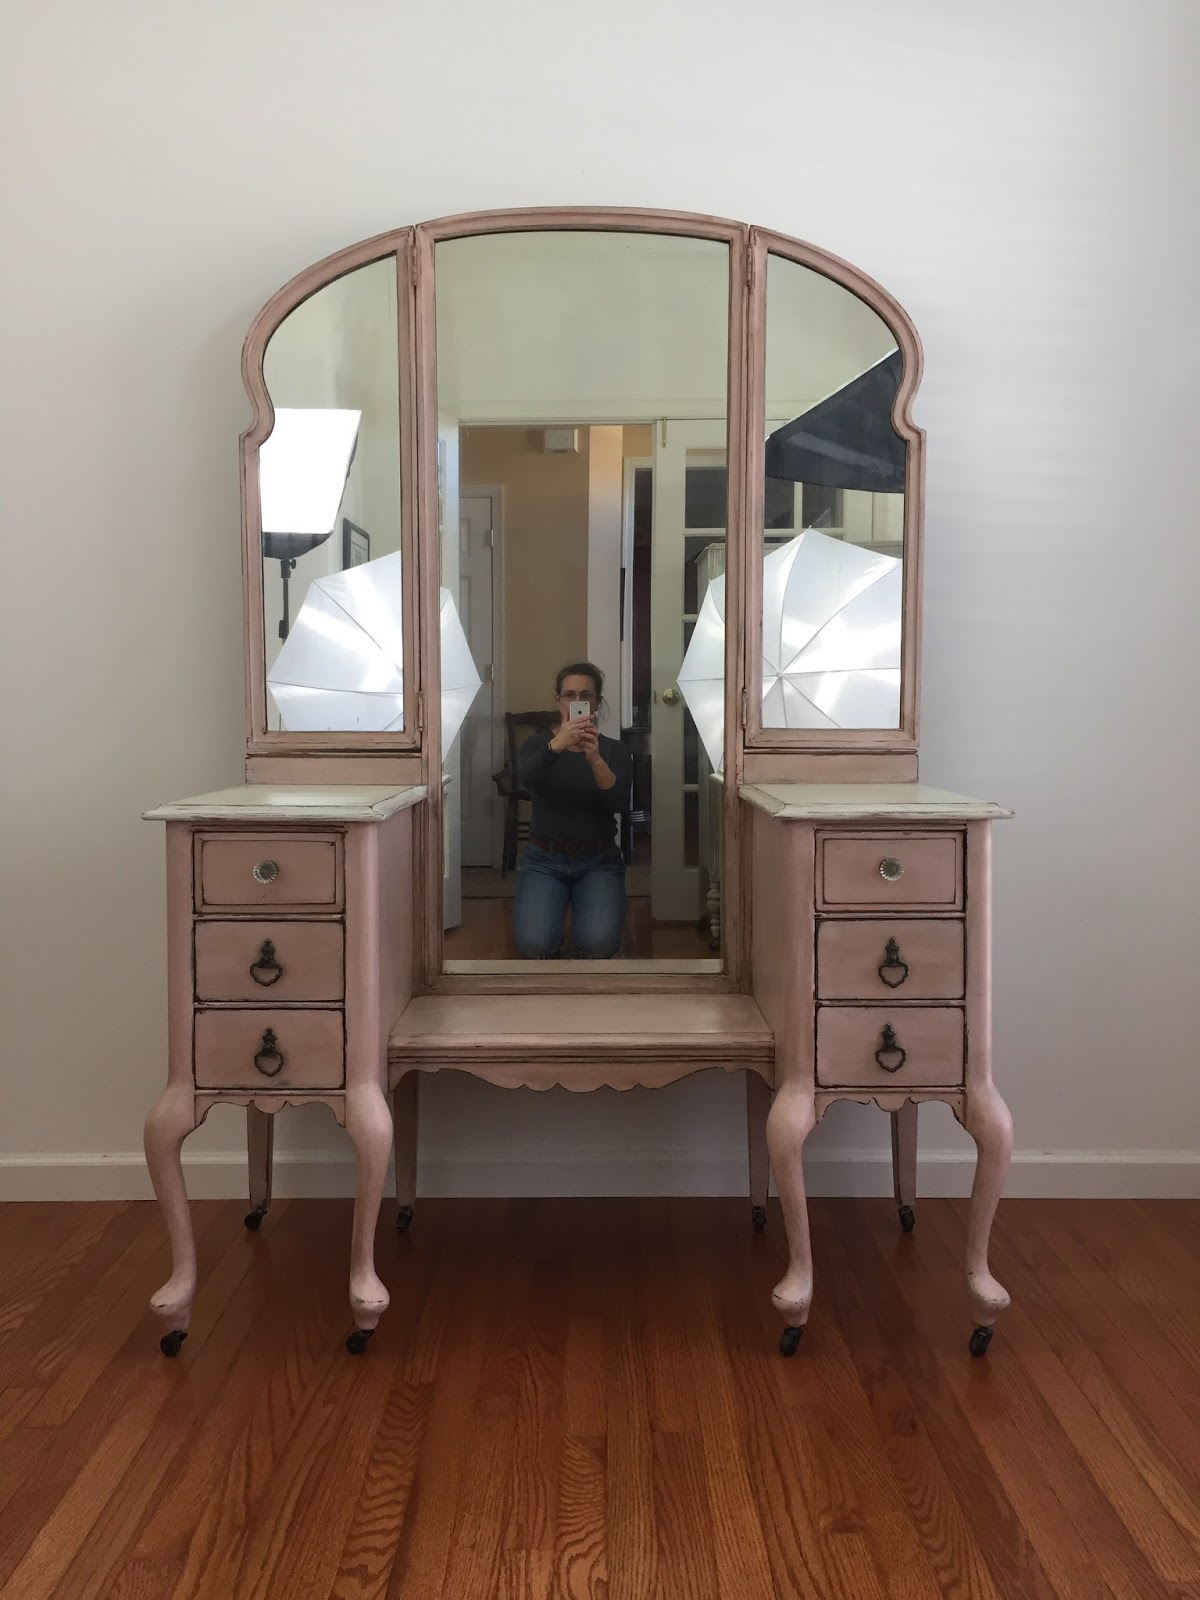 Vanity with mirrors before Photoshop